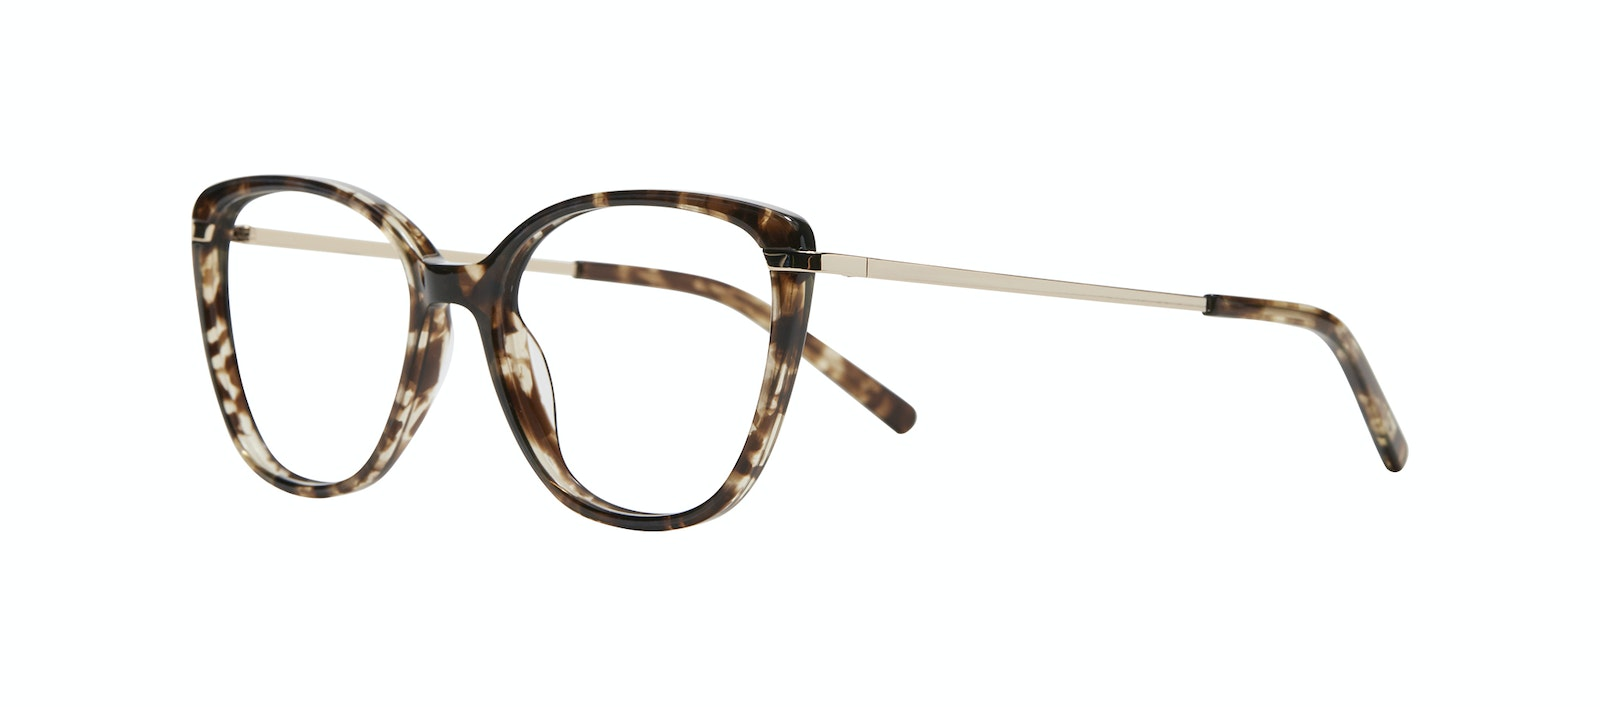 Affordable Fashion Glasses Rectangle Square Eyeglasses Women Illusion Leopard Tilt